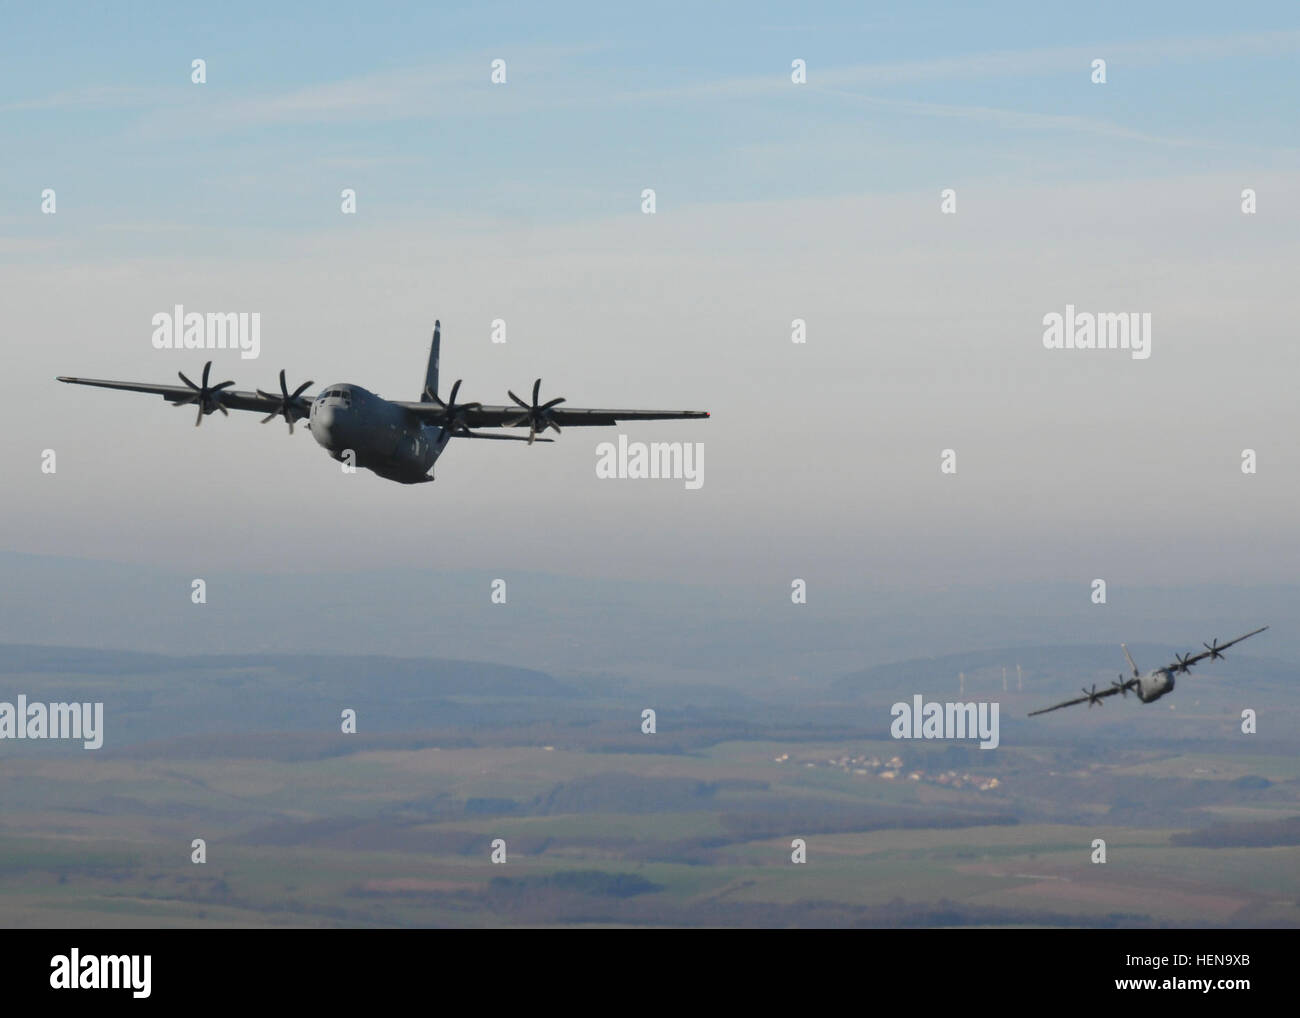 Two C-130 aircraft line-up in preparation to drop U.S. and partner nation paratroopers during an airborne operation - Stock Image